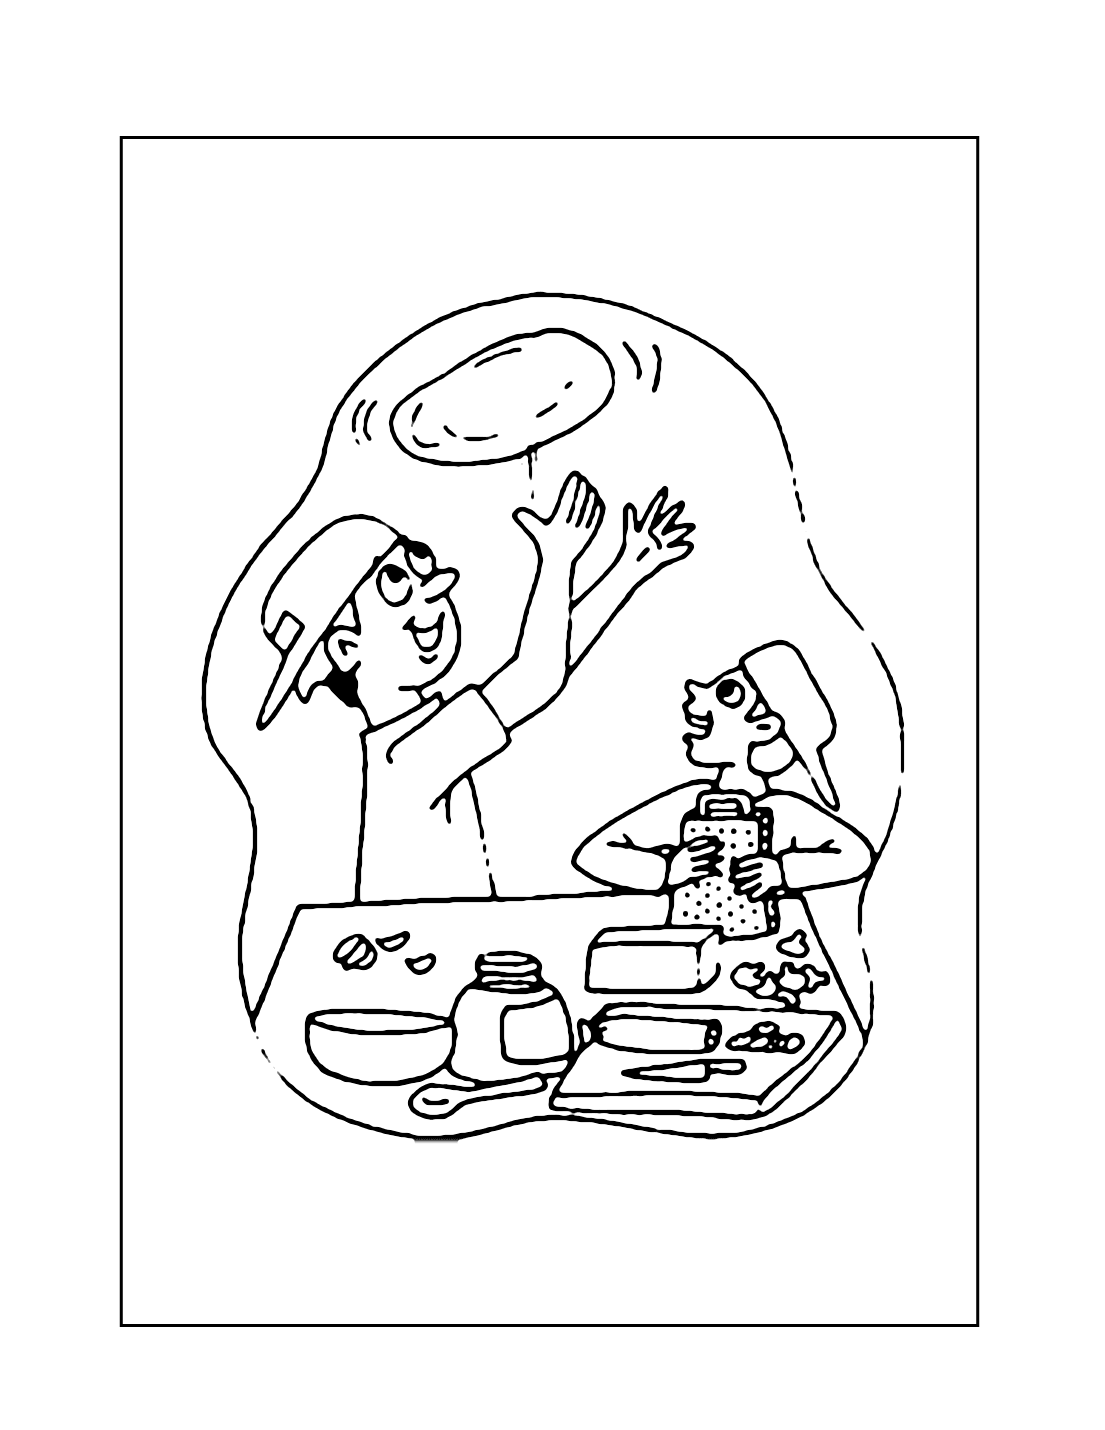 Throwing Pizza Dough Coloring Page